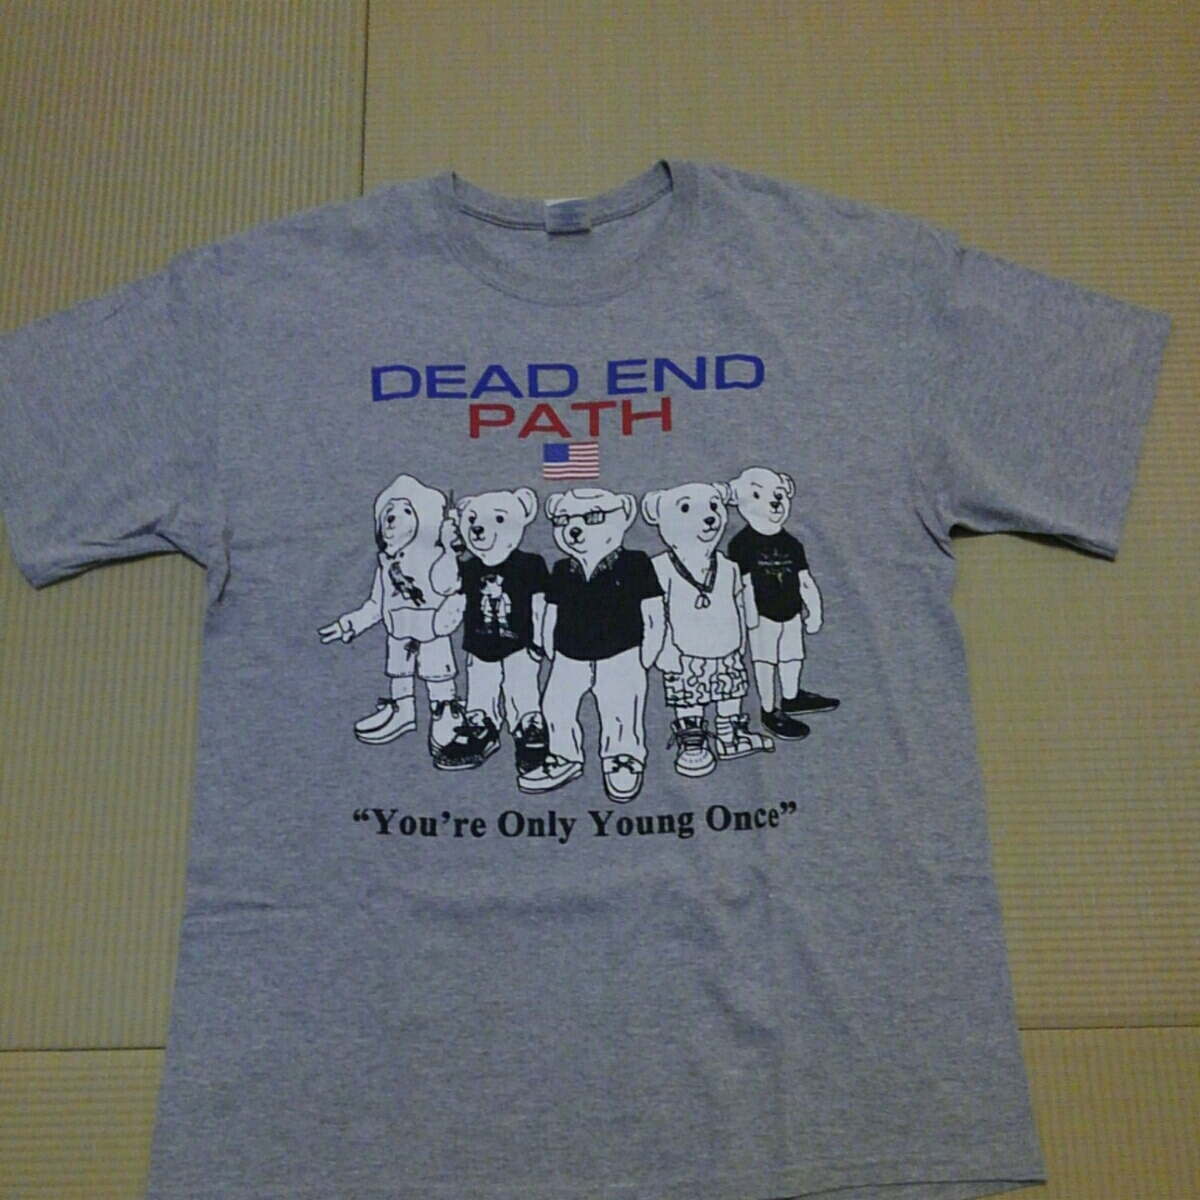 dead end path blind faith Tシャツ セット BBB lockinout polo bear ripoff madball terror hardcore nyhc trapped under ice